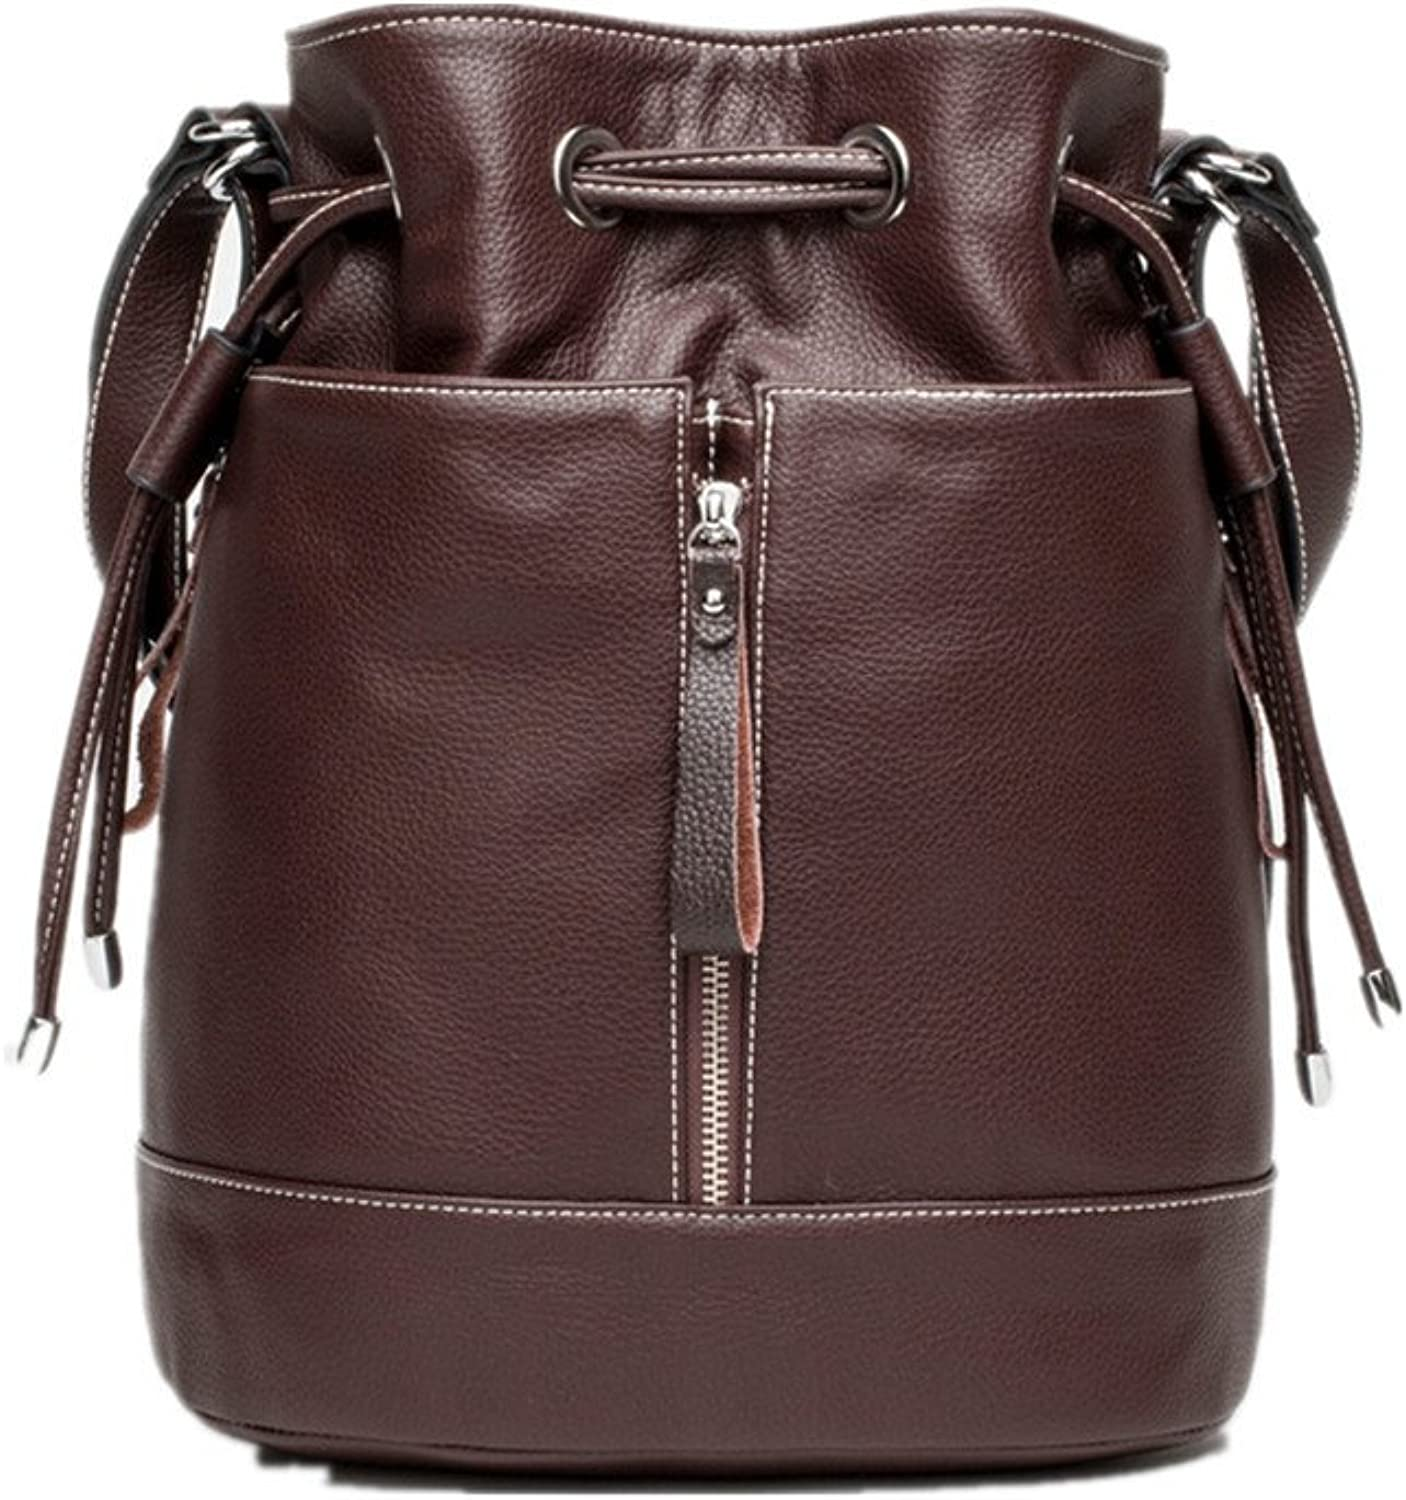 S-BBG Genuine Leather Travel Backpack Shoulder Bags Drawstring Bucket Bag Satchel 3Way